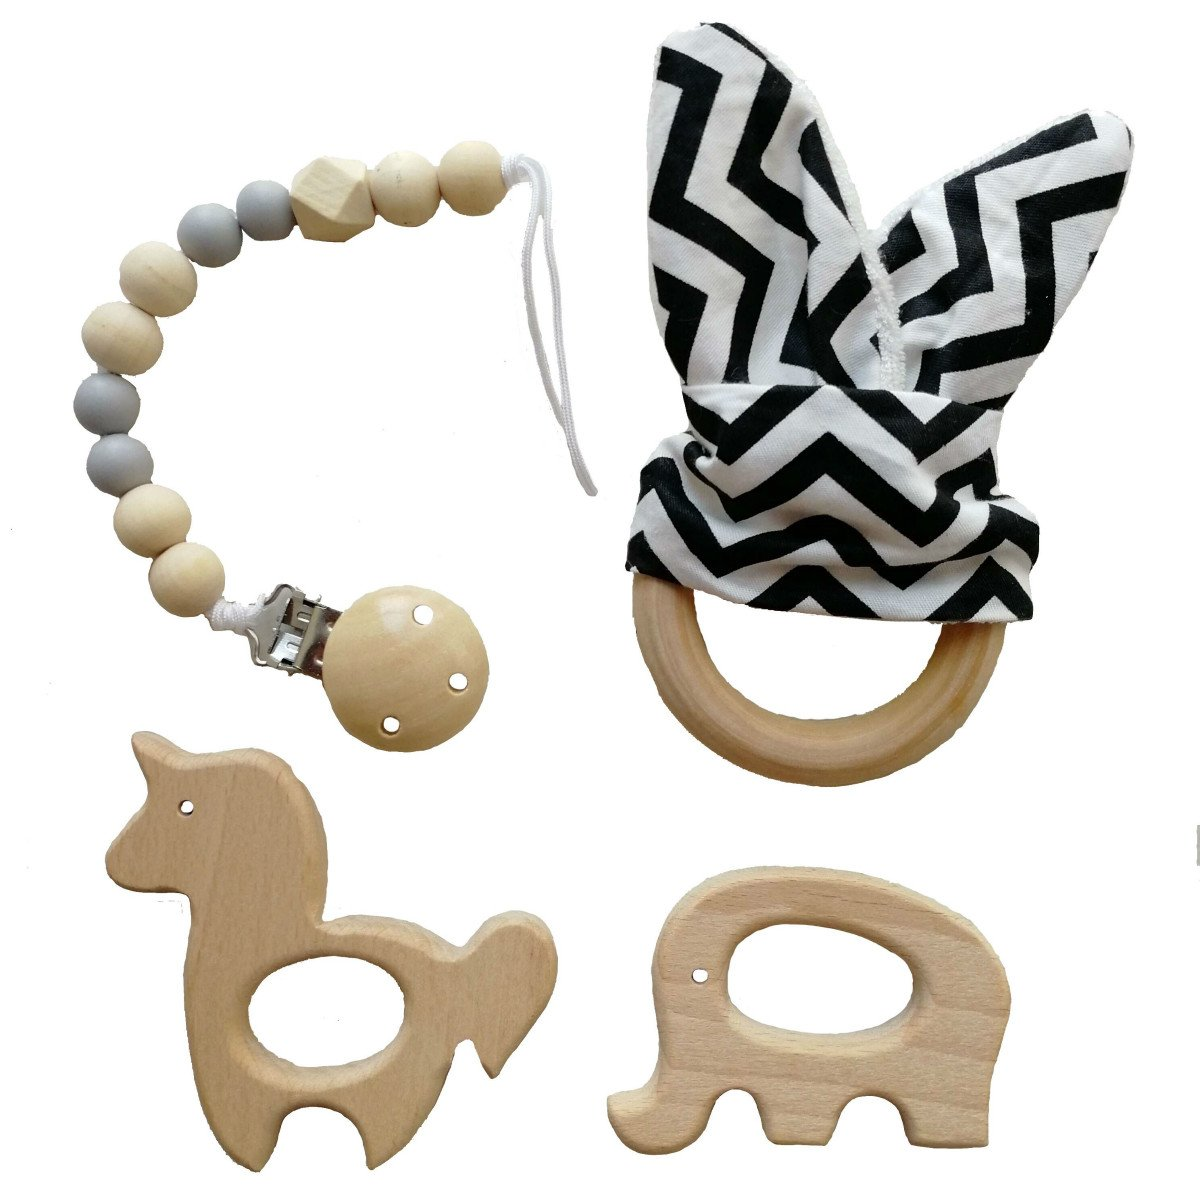 Amazon.com   Muhuyi 4 Pack Baby Teether Ring Natural Wooden Baby Teething  Toys and Pacifier Clip   Baby c0eacce02cc2